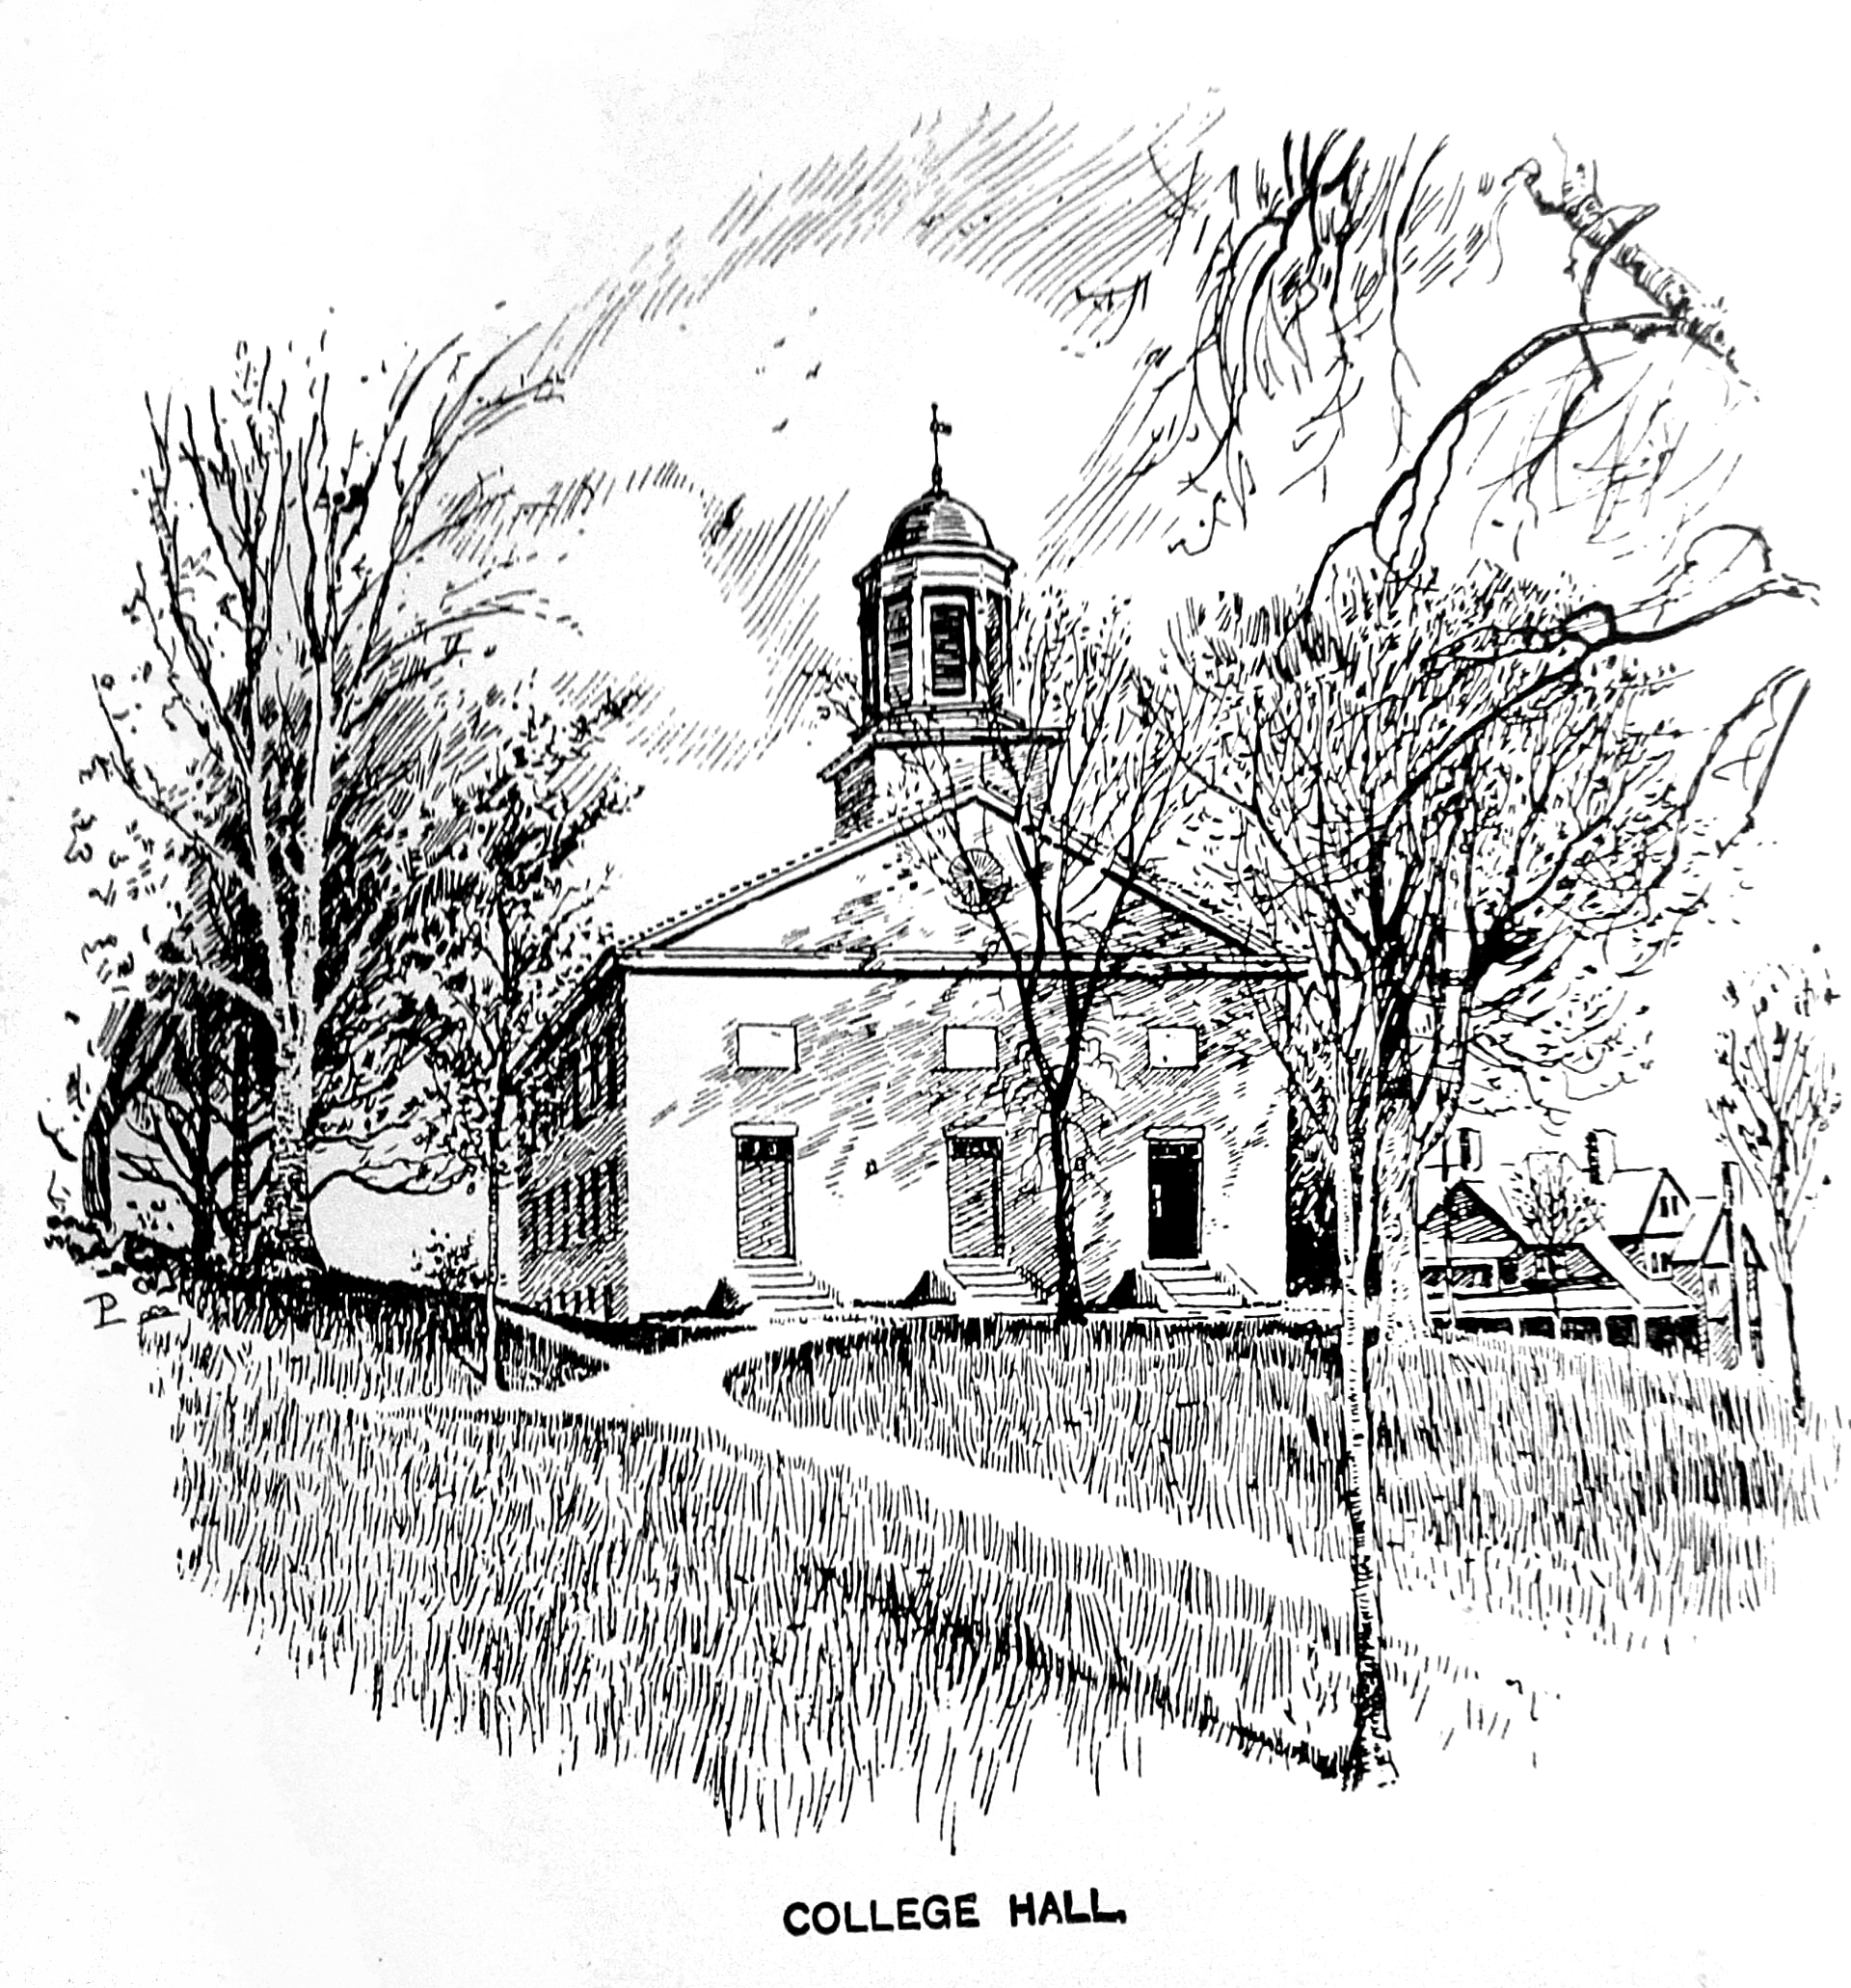 A sketch of College Hall with three front doors, and an octagonal cupola topped by a weather vane. Along the walkway, young trees stand amid the lawn.